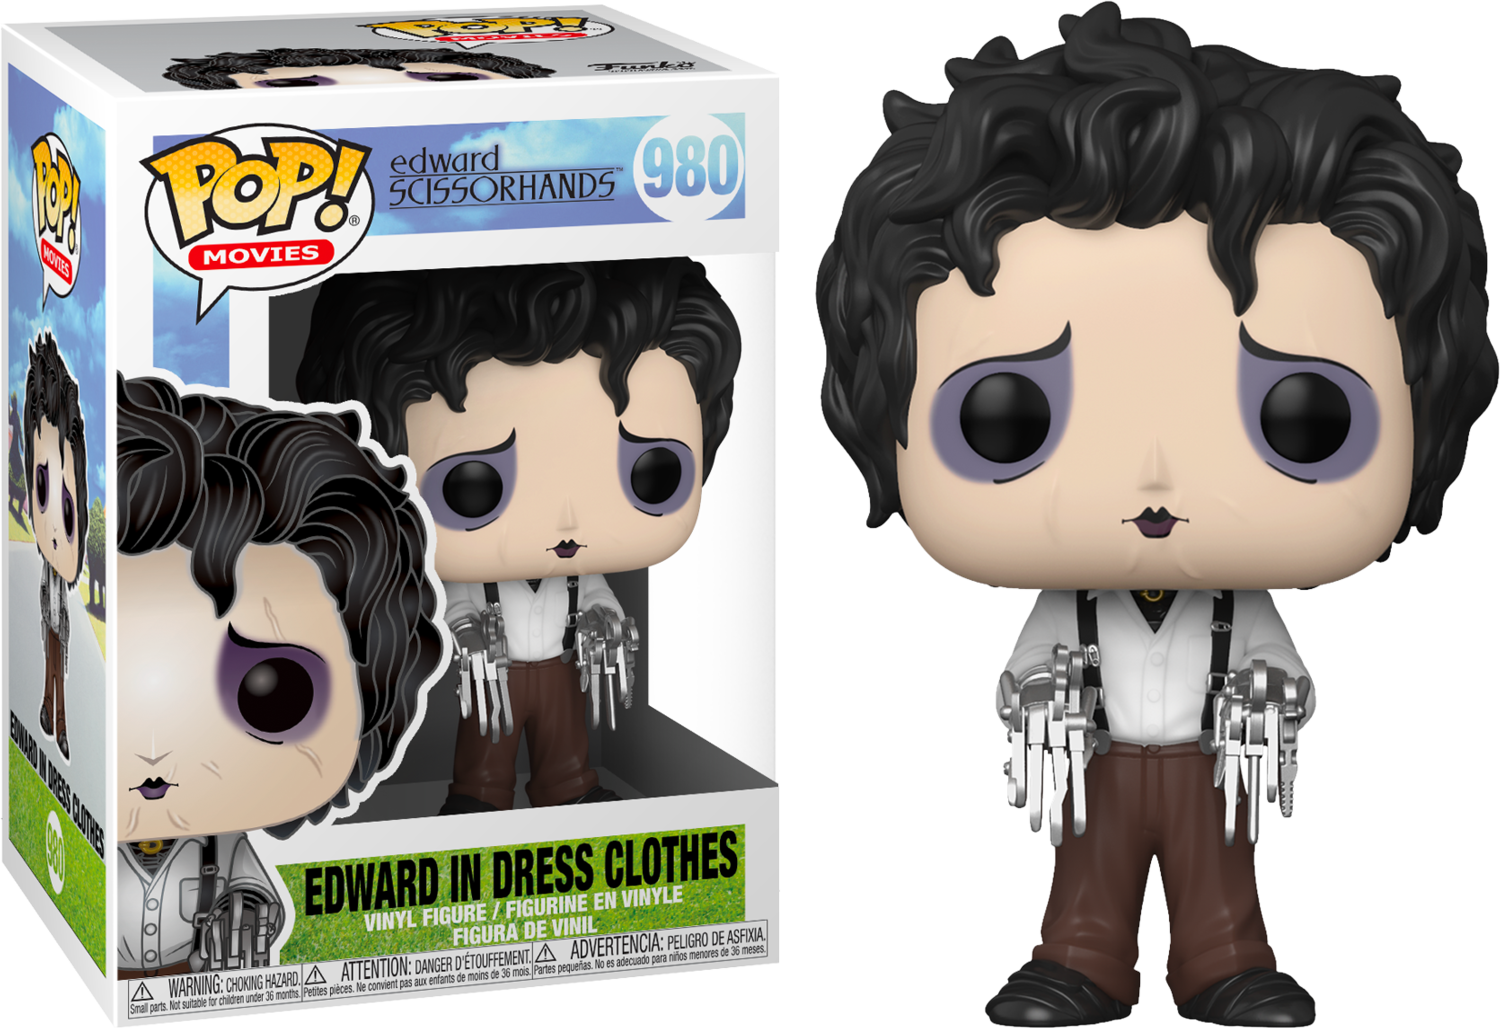 Edward Scissorhands - Edward Scissorhands in Dress Clothes Pop! Vinyl Figure